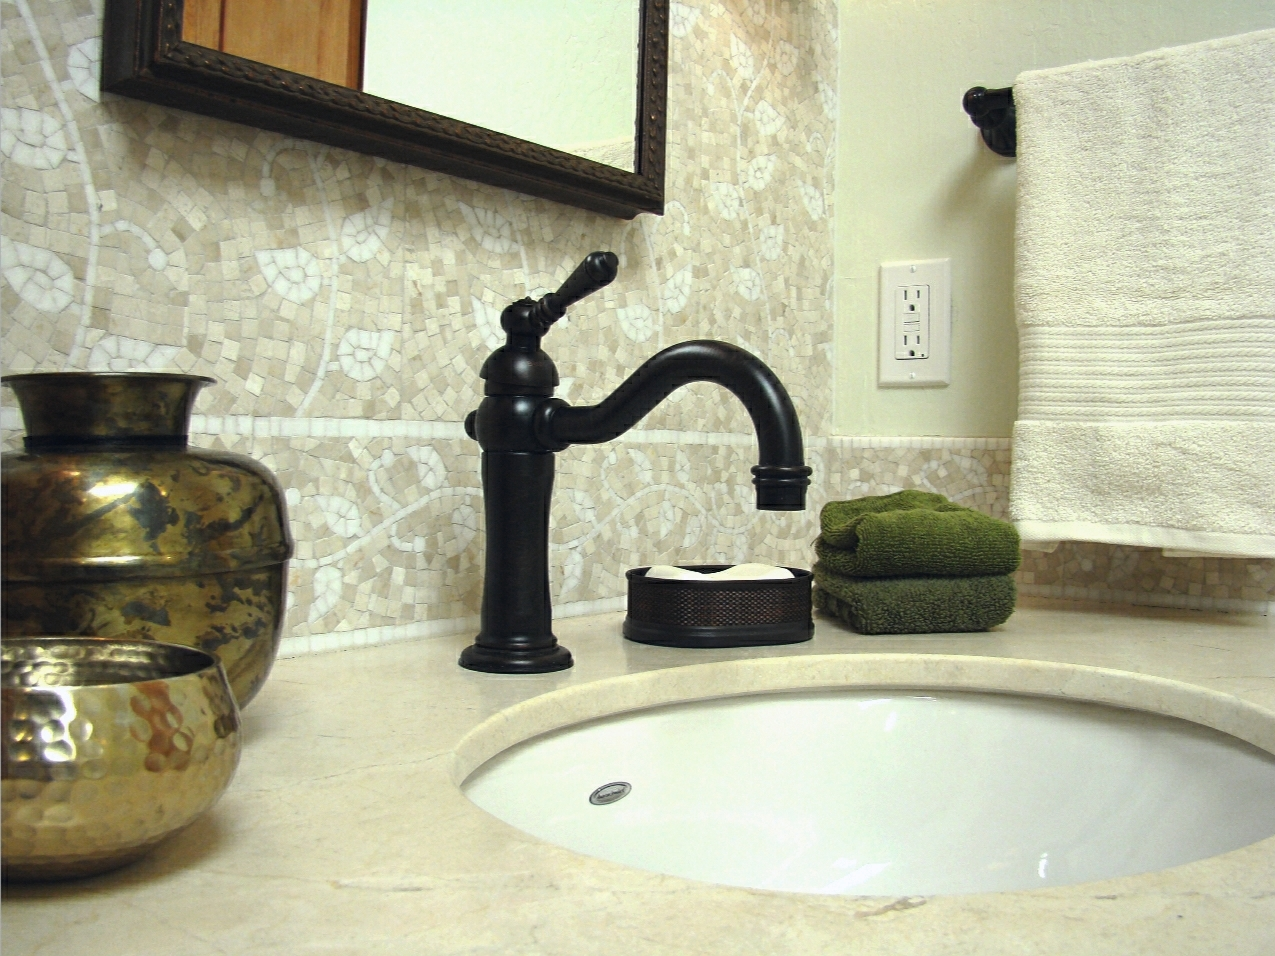 Fiorito Interior Design, interior design, remodel, master bathroom, custom vanity, mosaic tile, marble counter, sink, faucet, traditional